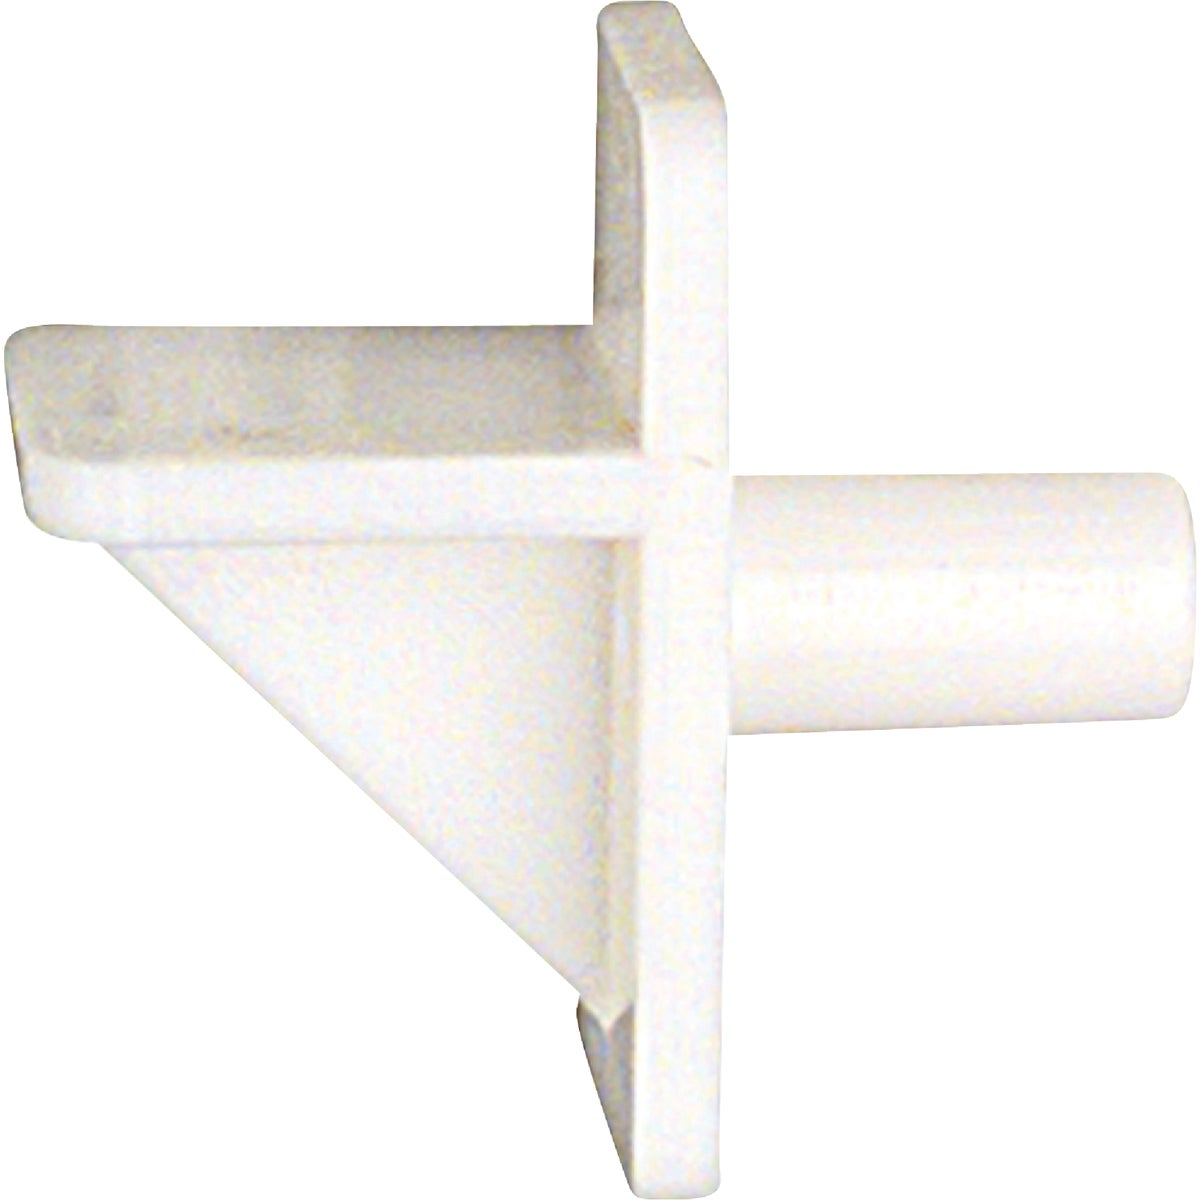 100PK WHT SHELF SUPPORT